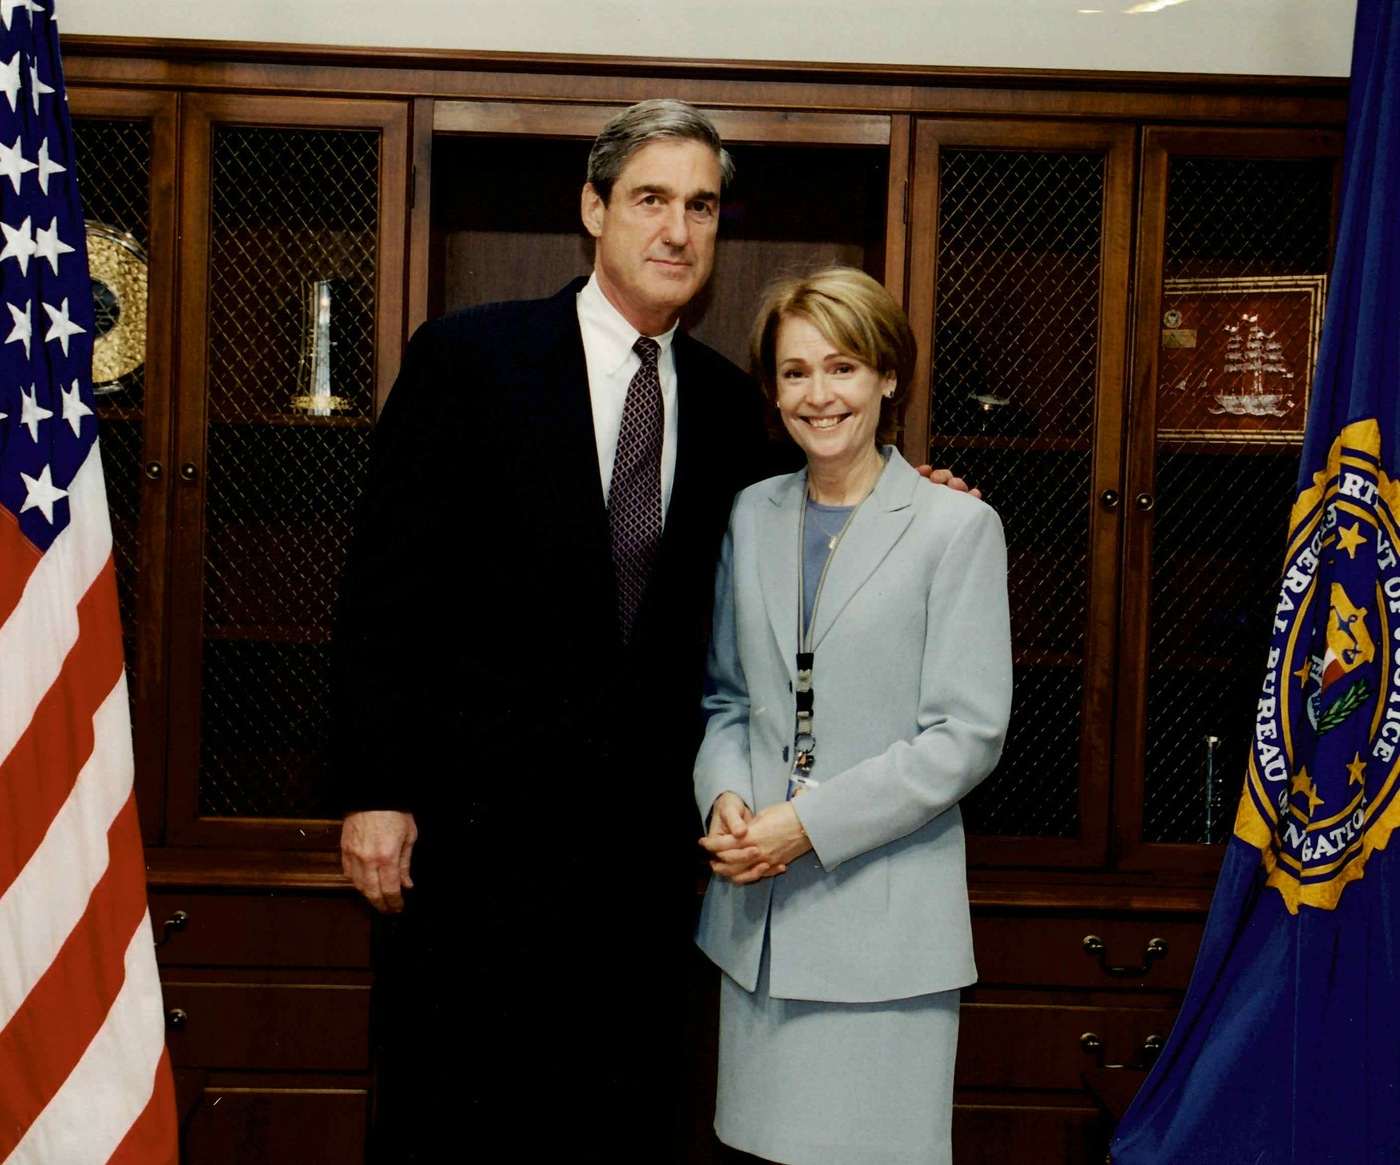 Kathryn Turman stands for a picture with FBI Director Robert S. Mueller in 2002.